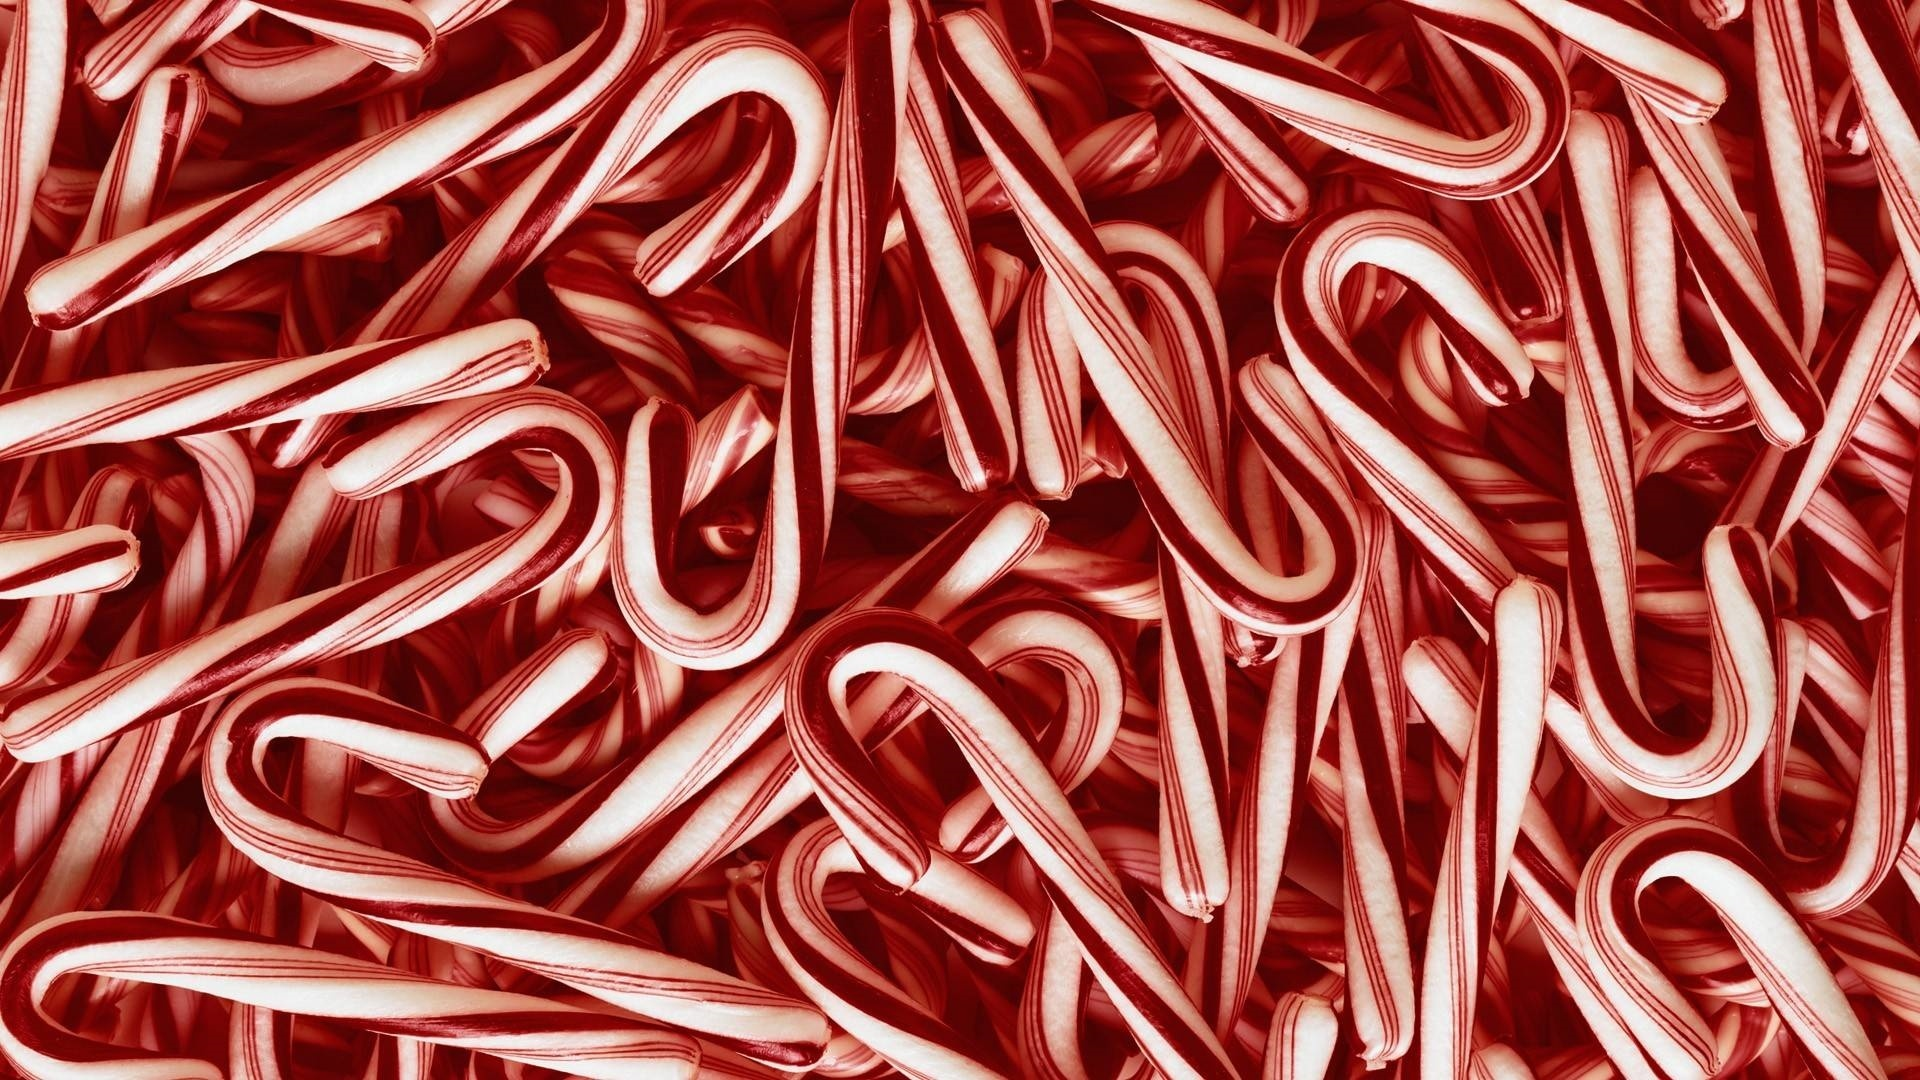 Candy Cane Desktop wallpaper